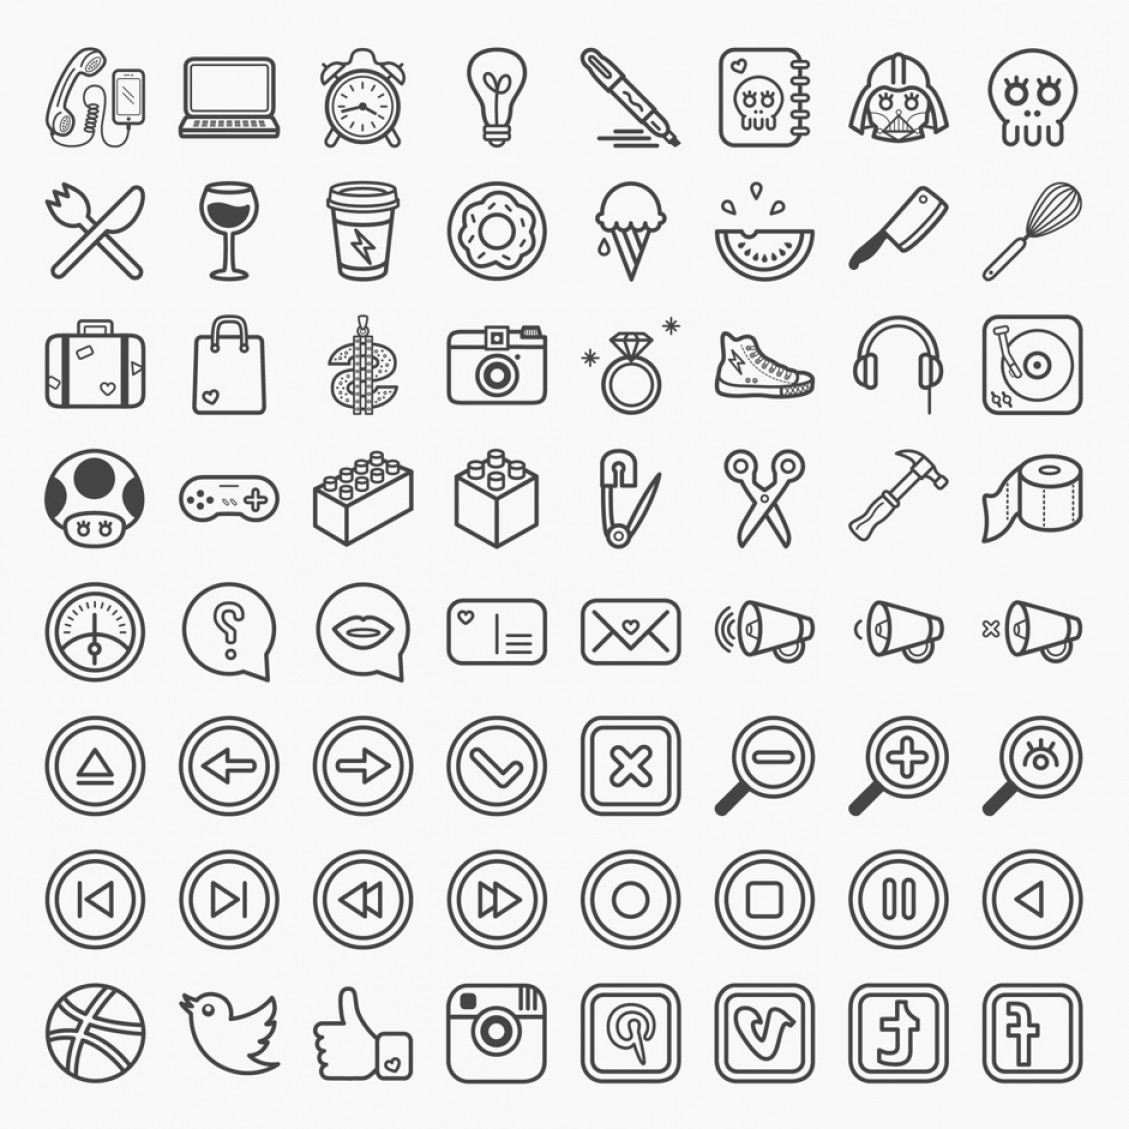 Downloadable Vector Art: Great Collection Of Free Vector Icons And Pictograms For Interfaces And Responsive Web Design